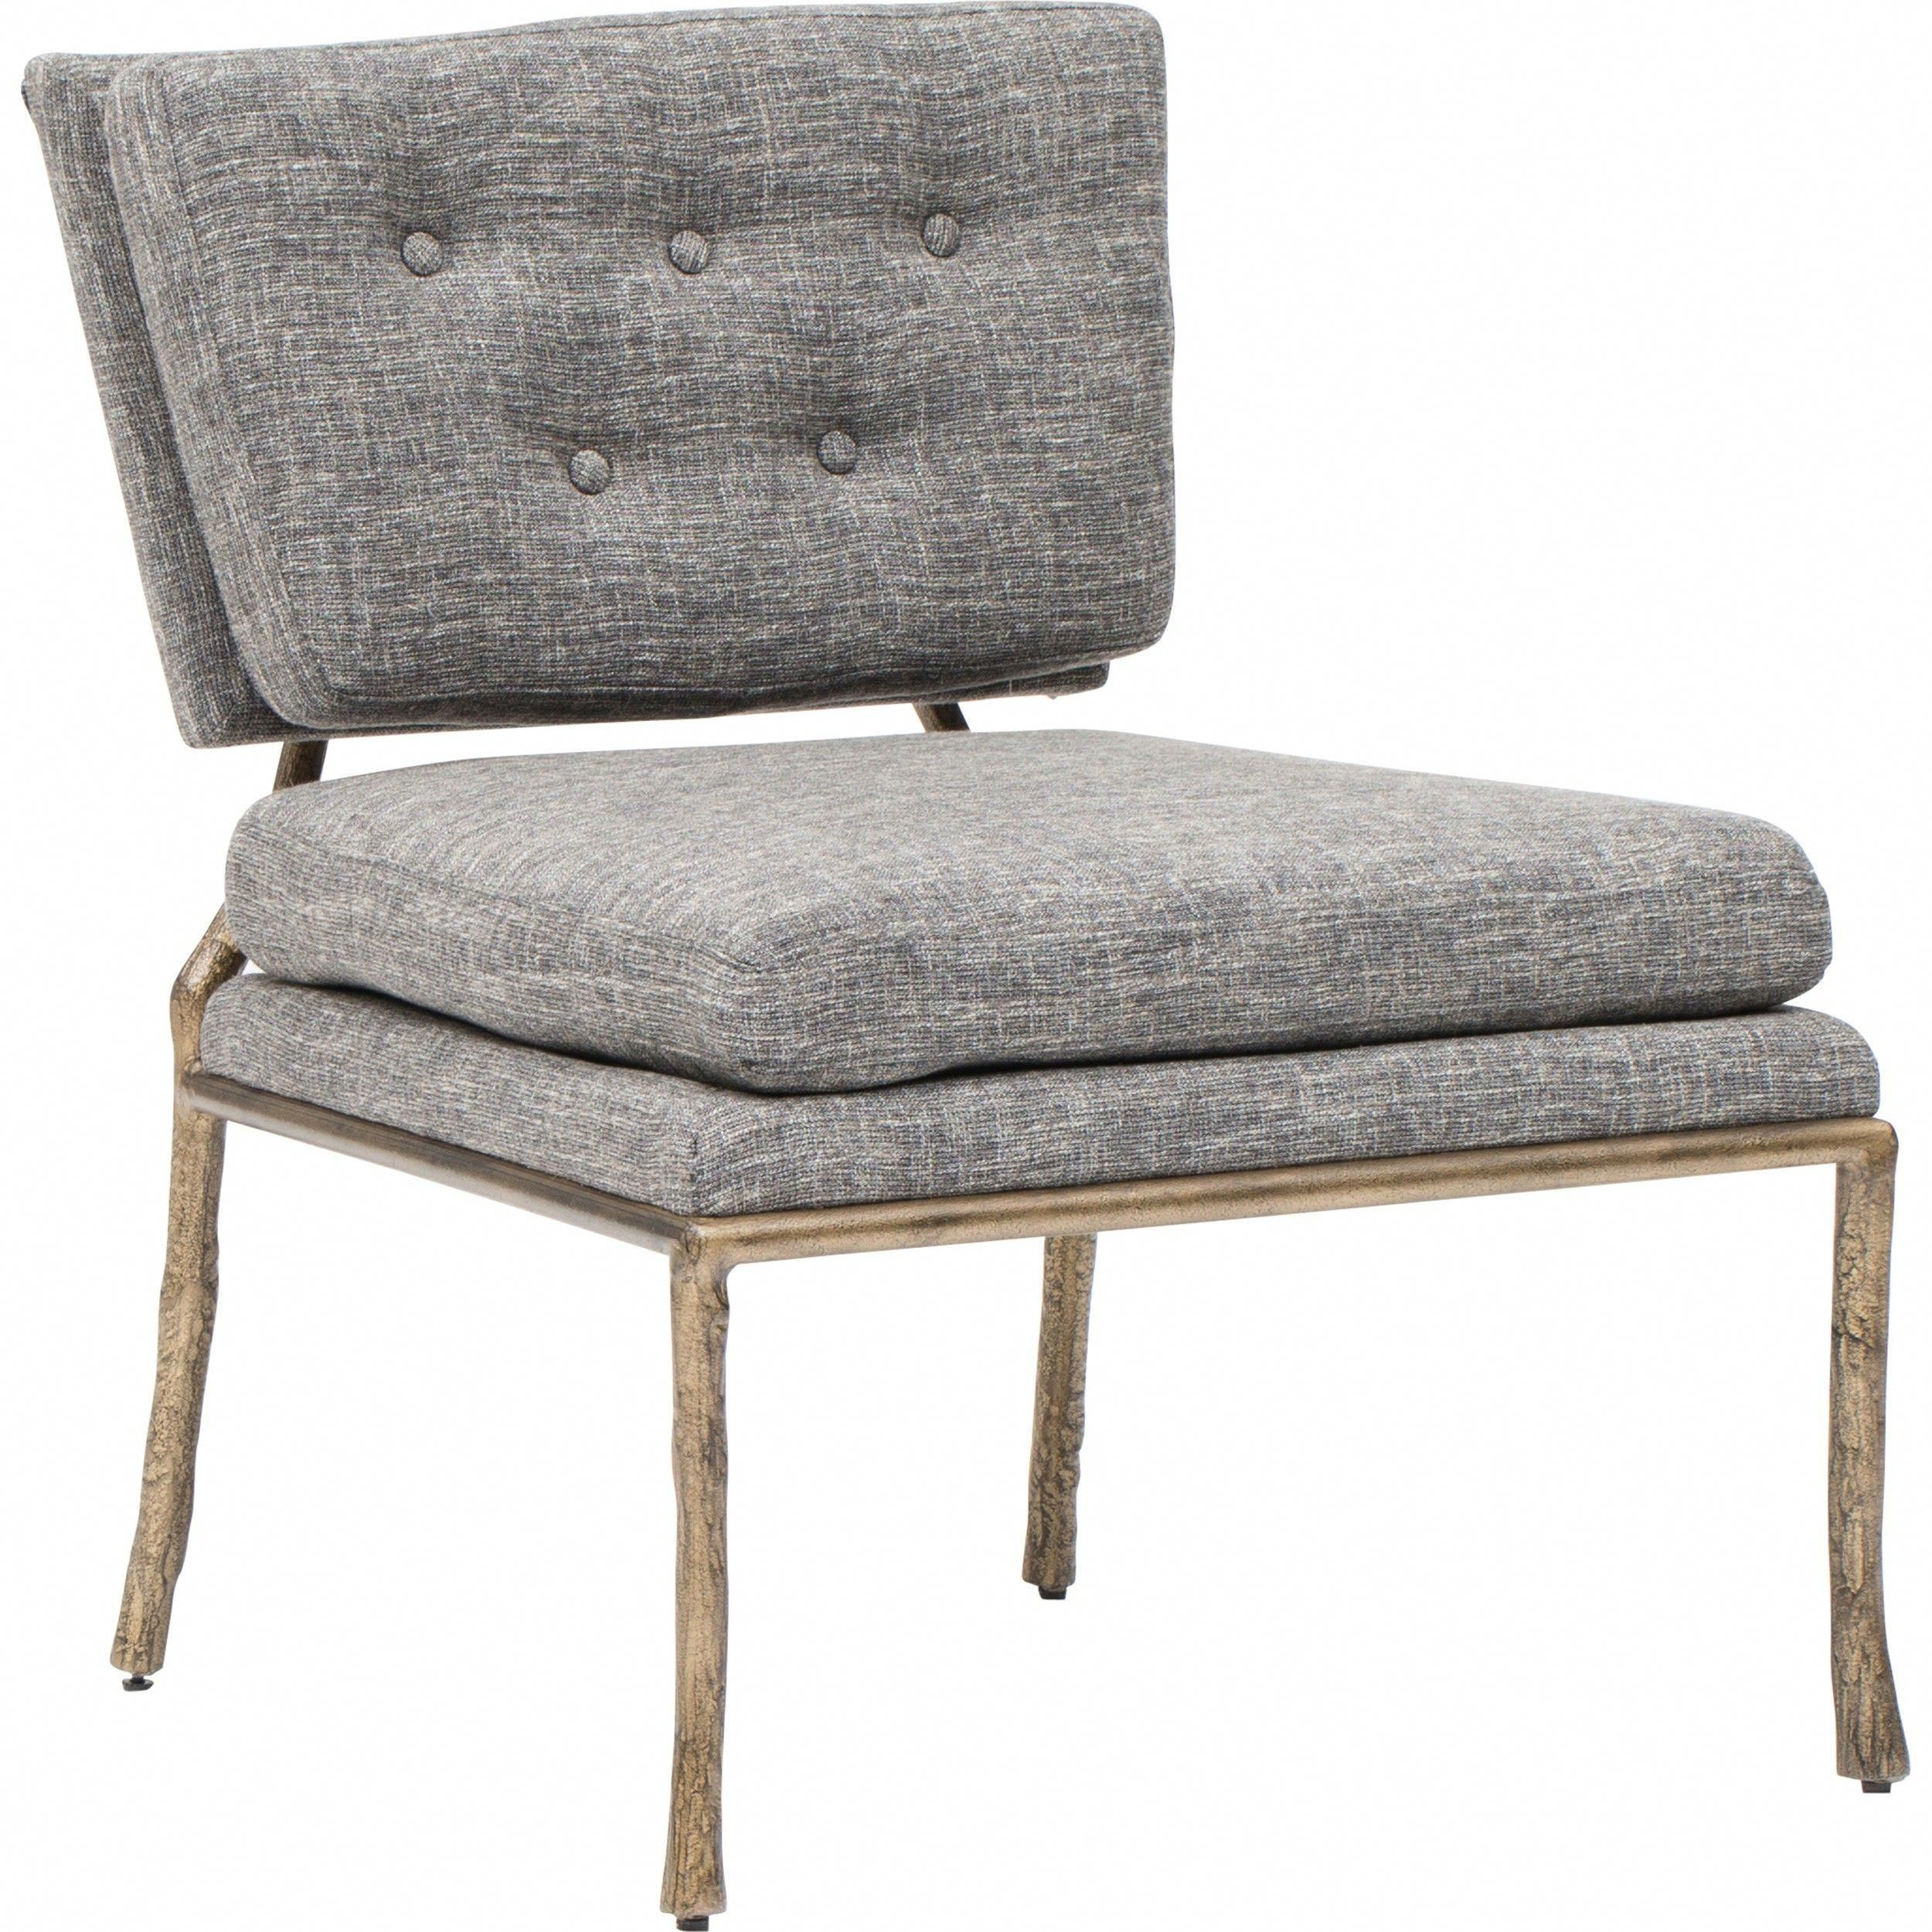 Swell Cabot Chair Beige Grey Smalllivingroomfurniturechairs Caraccident5 Cool Chair Designs And Ideas Caraccident5Info